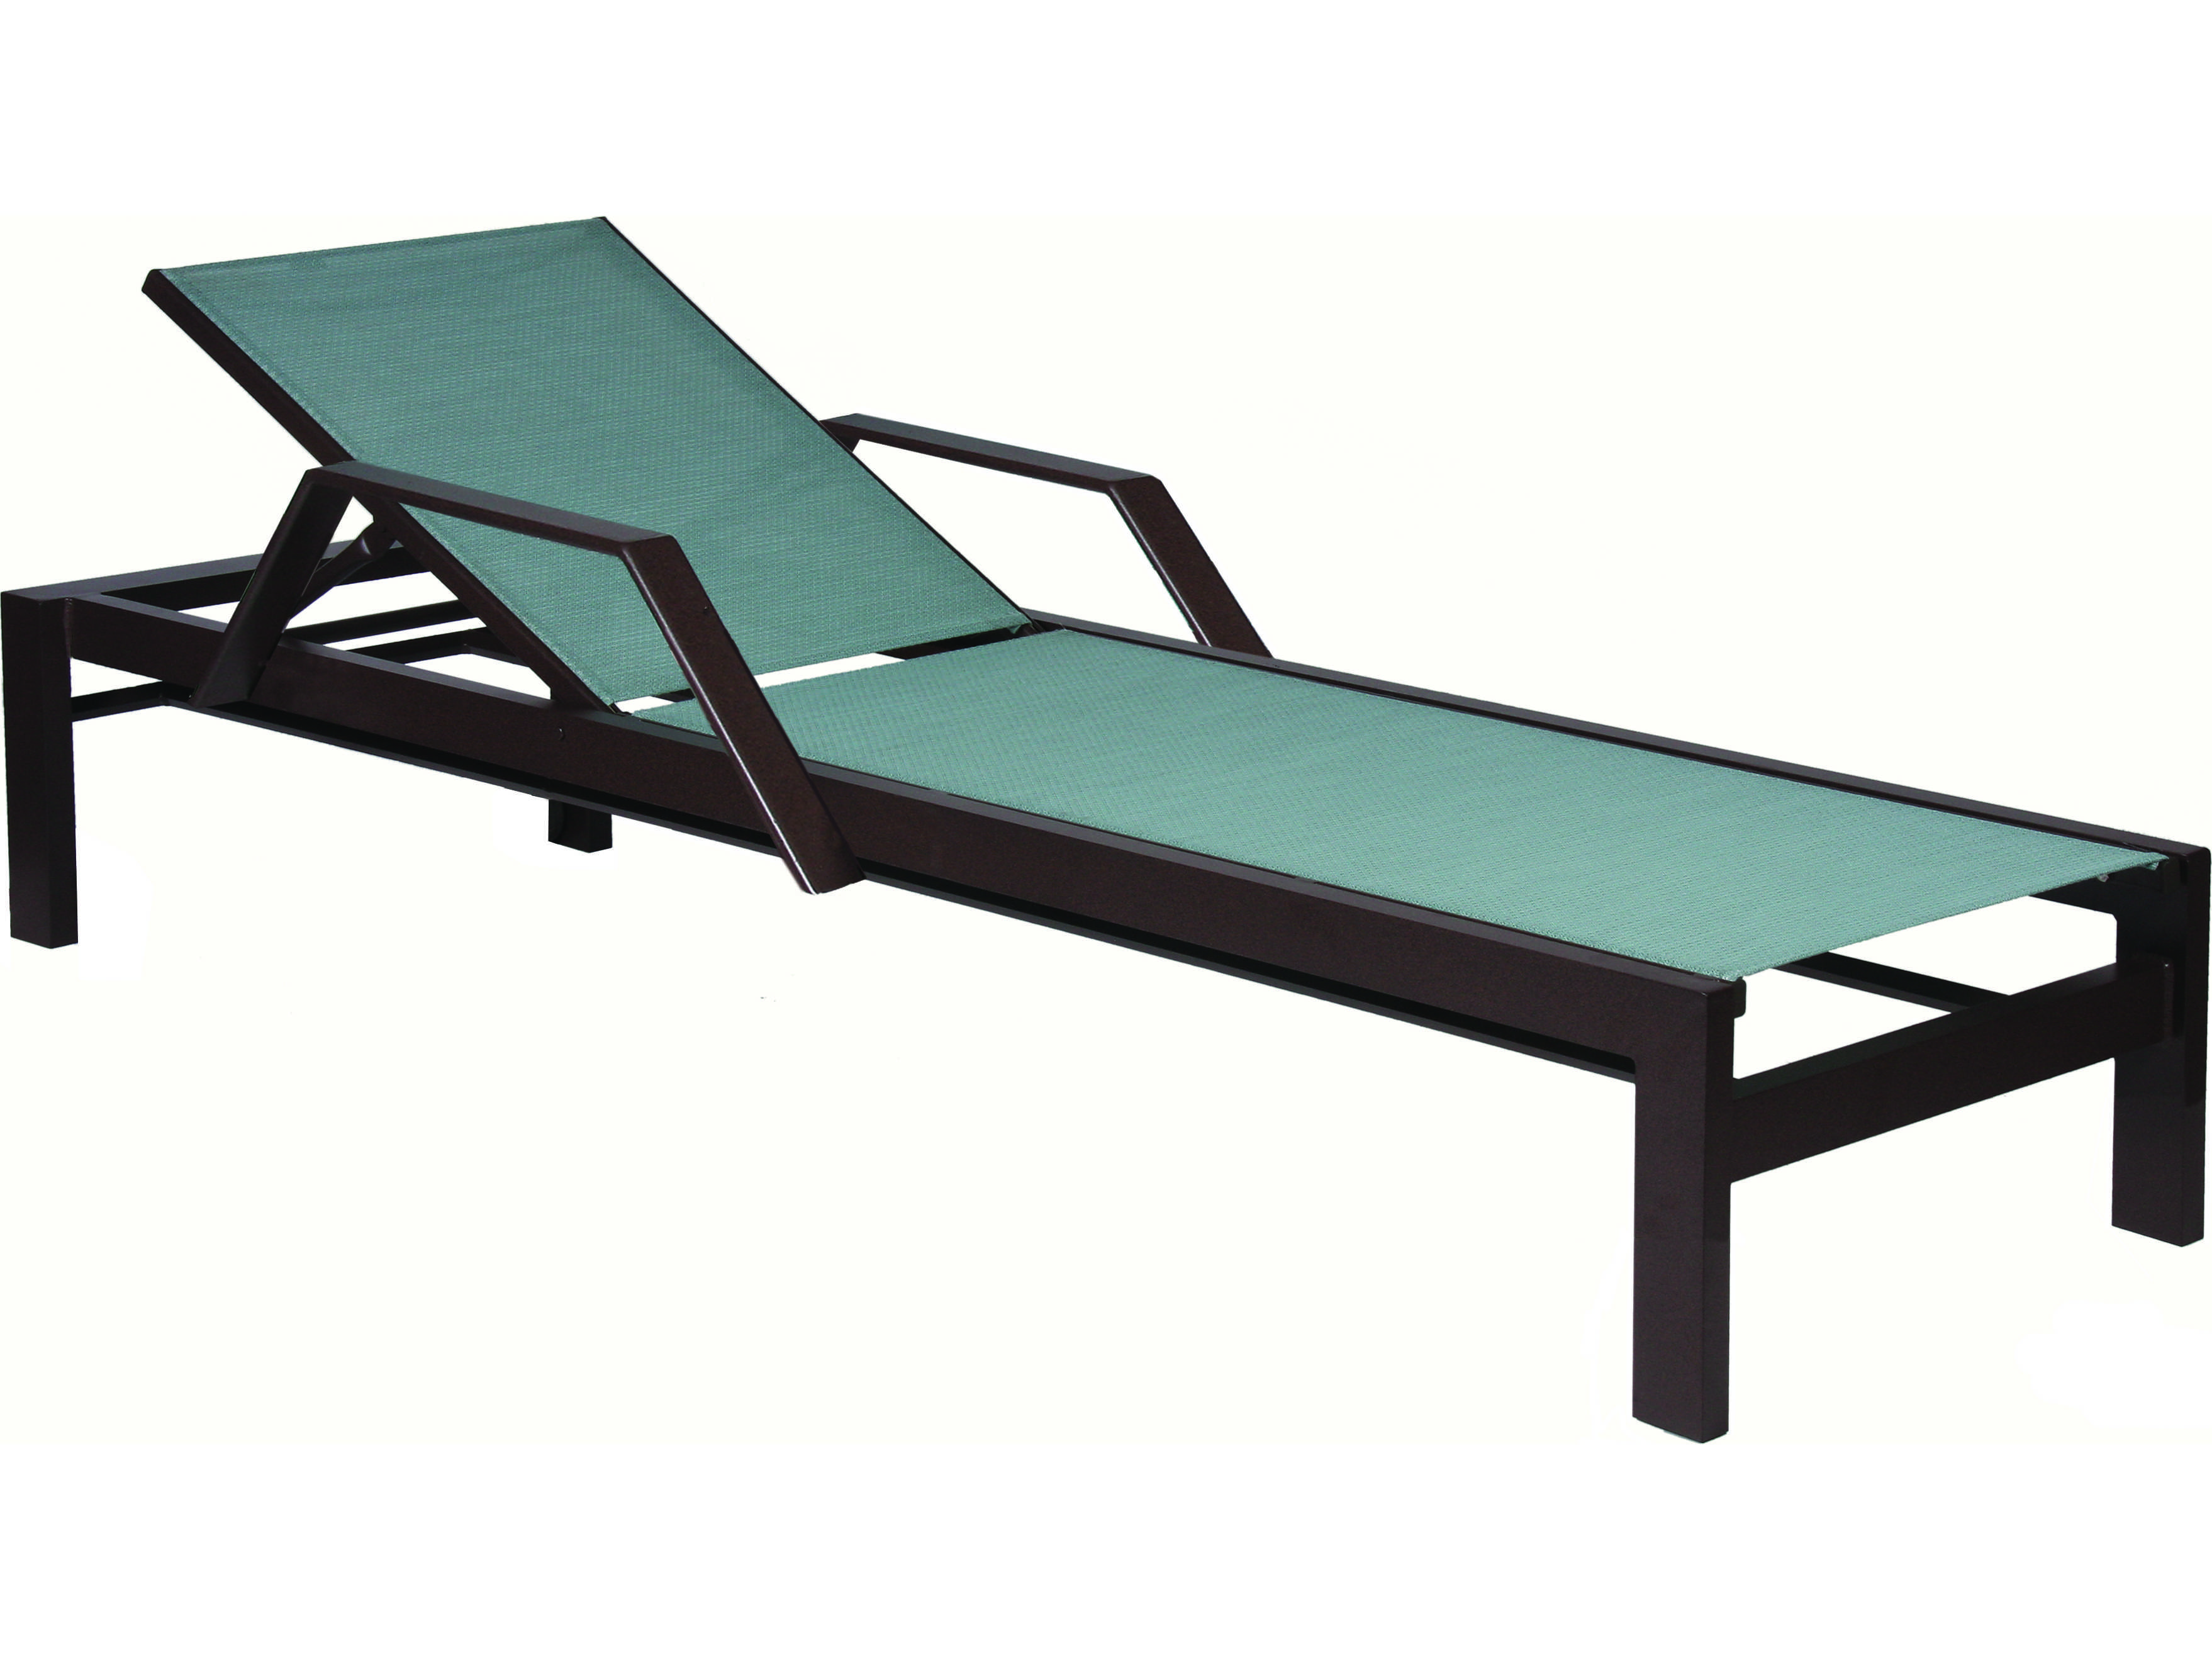 Suncoast vectra bold sling cast aluminum chaise lounge e492 for Cast aluminum chaise